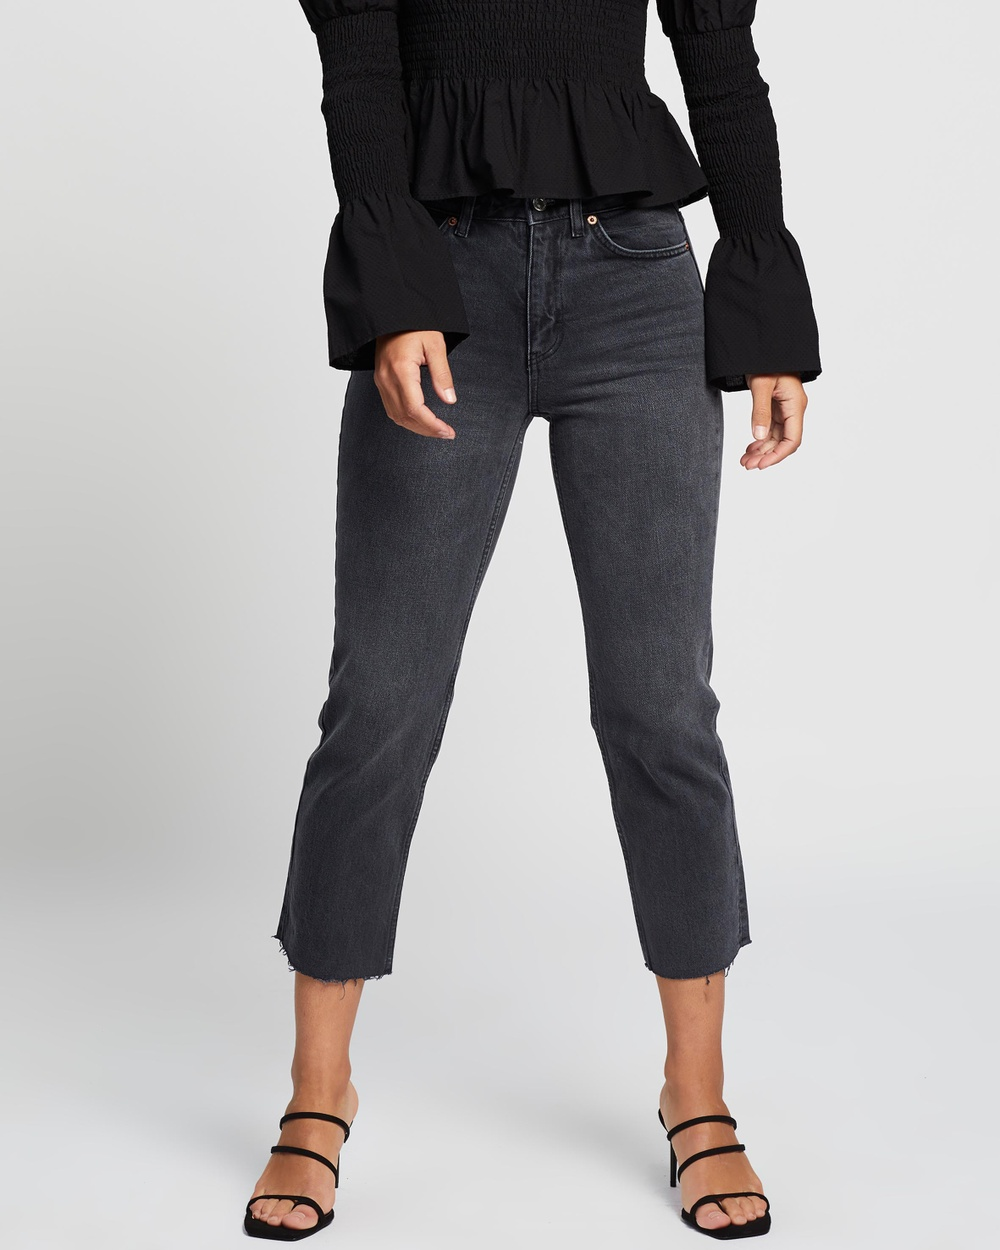 TOPSHOP Straight Jeans High-Waisted Washed Black Australia